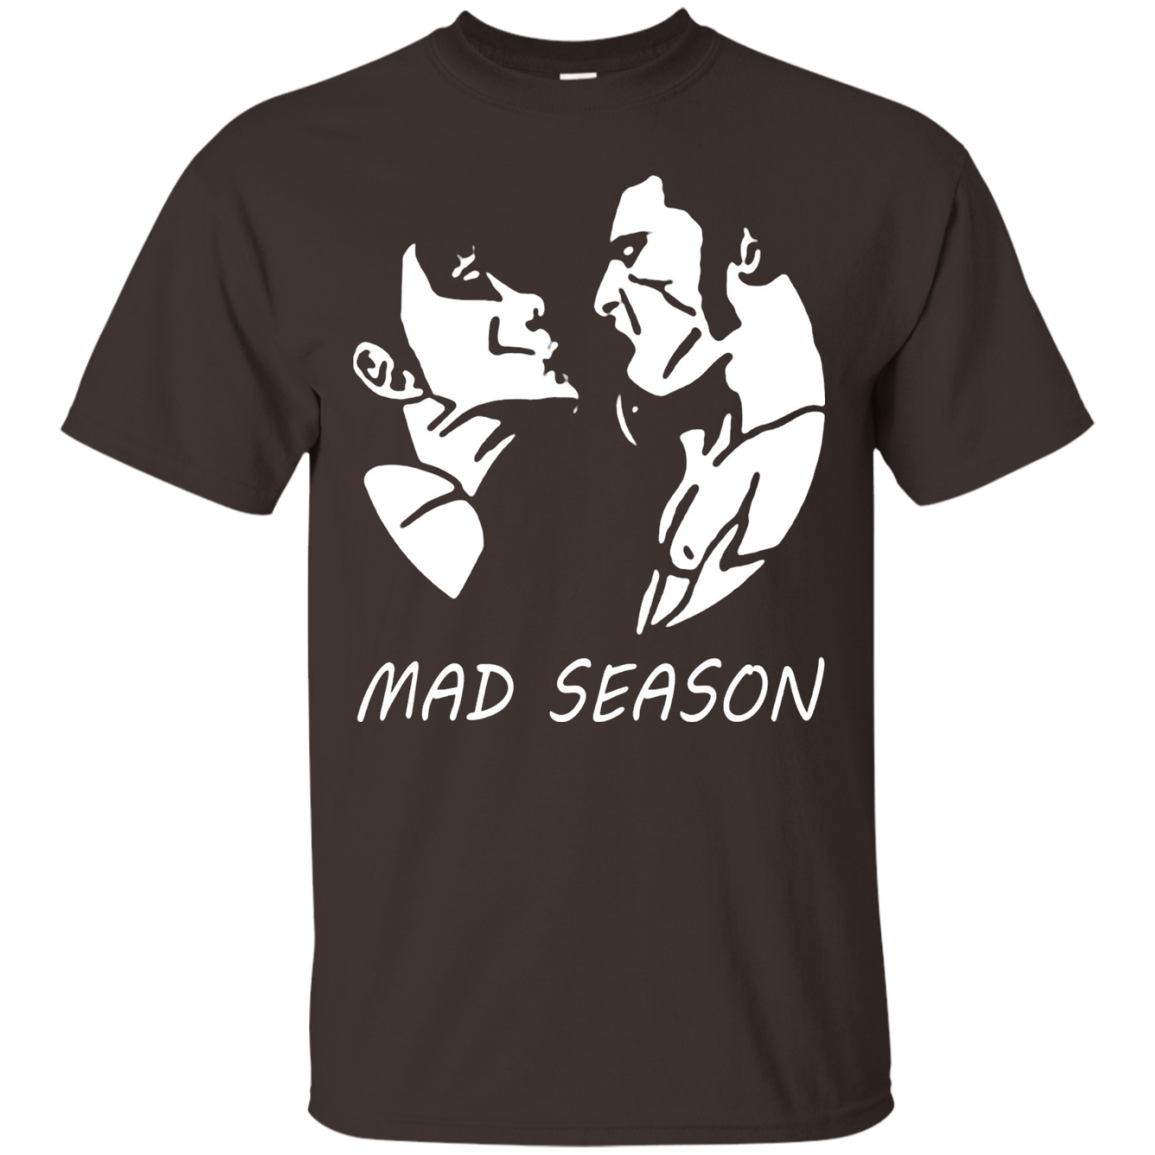 Men's New Hot Mad Season Rock T shirt - Hight Quality